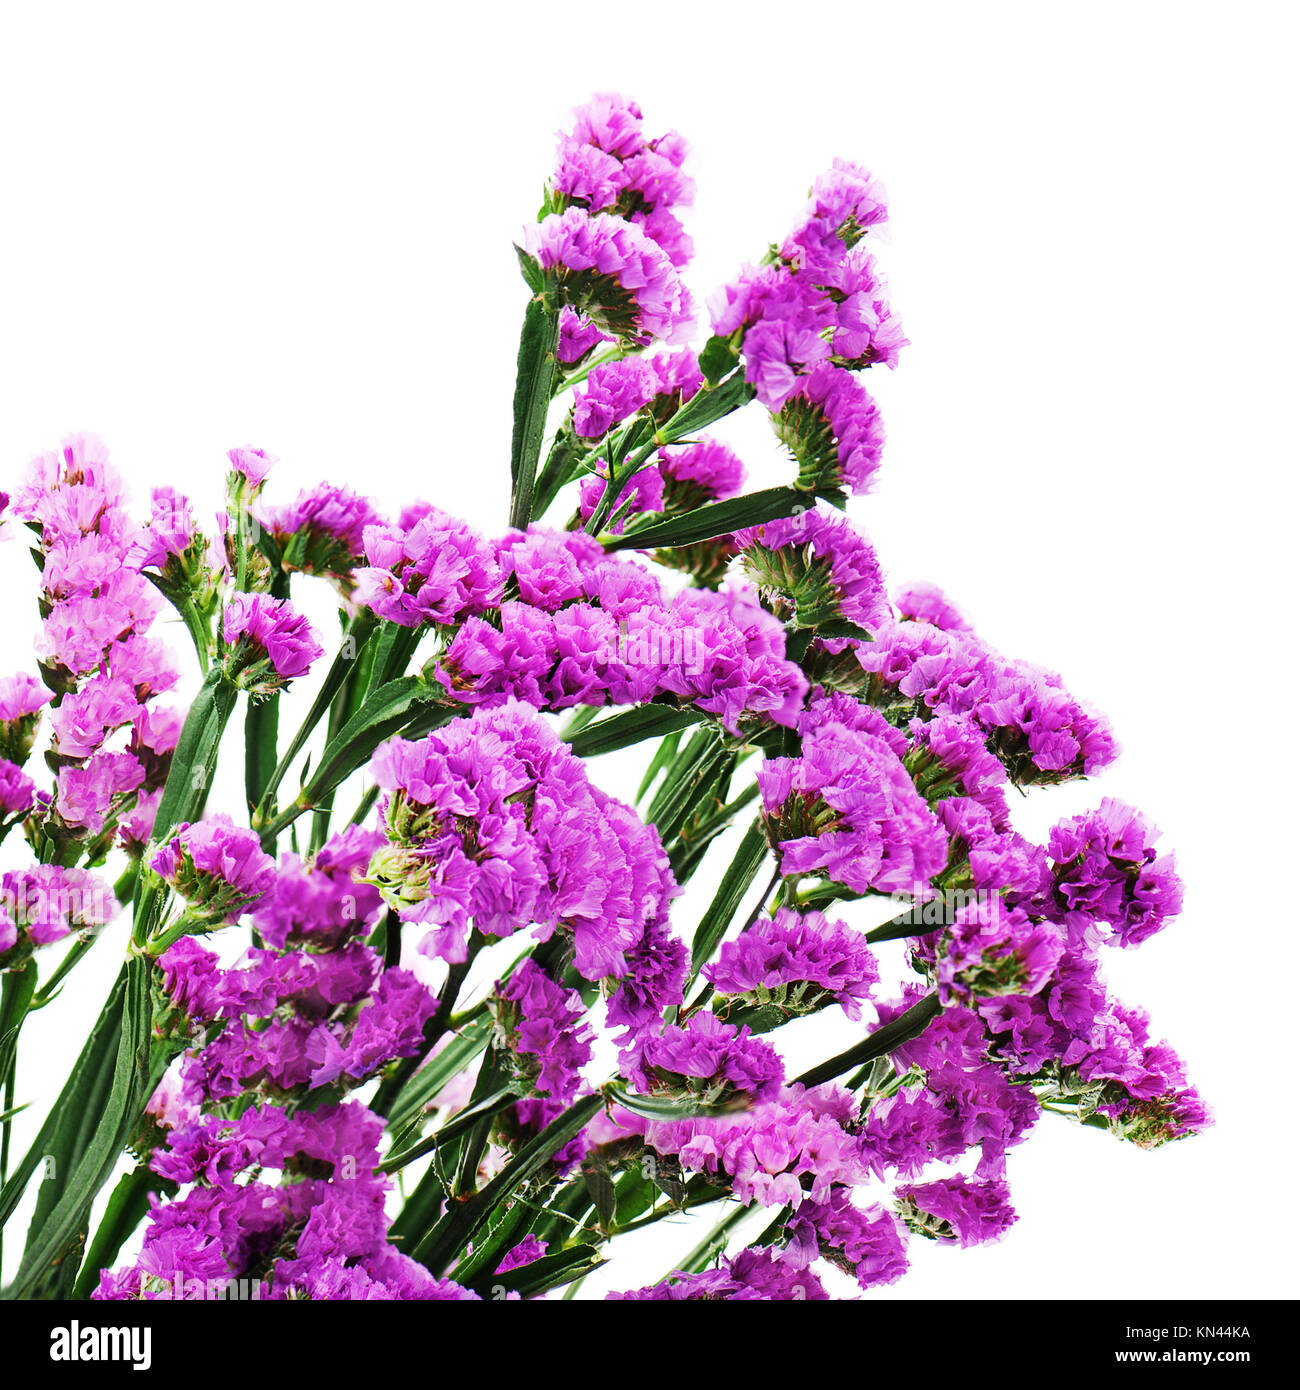 Bouquet from purple statice flowers isolated on white background. Closeup. - Stock Image